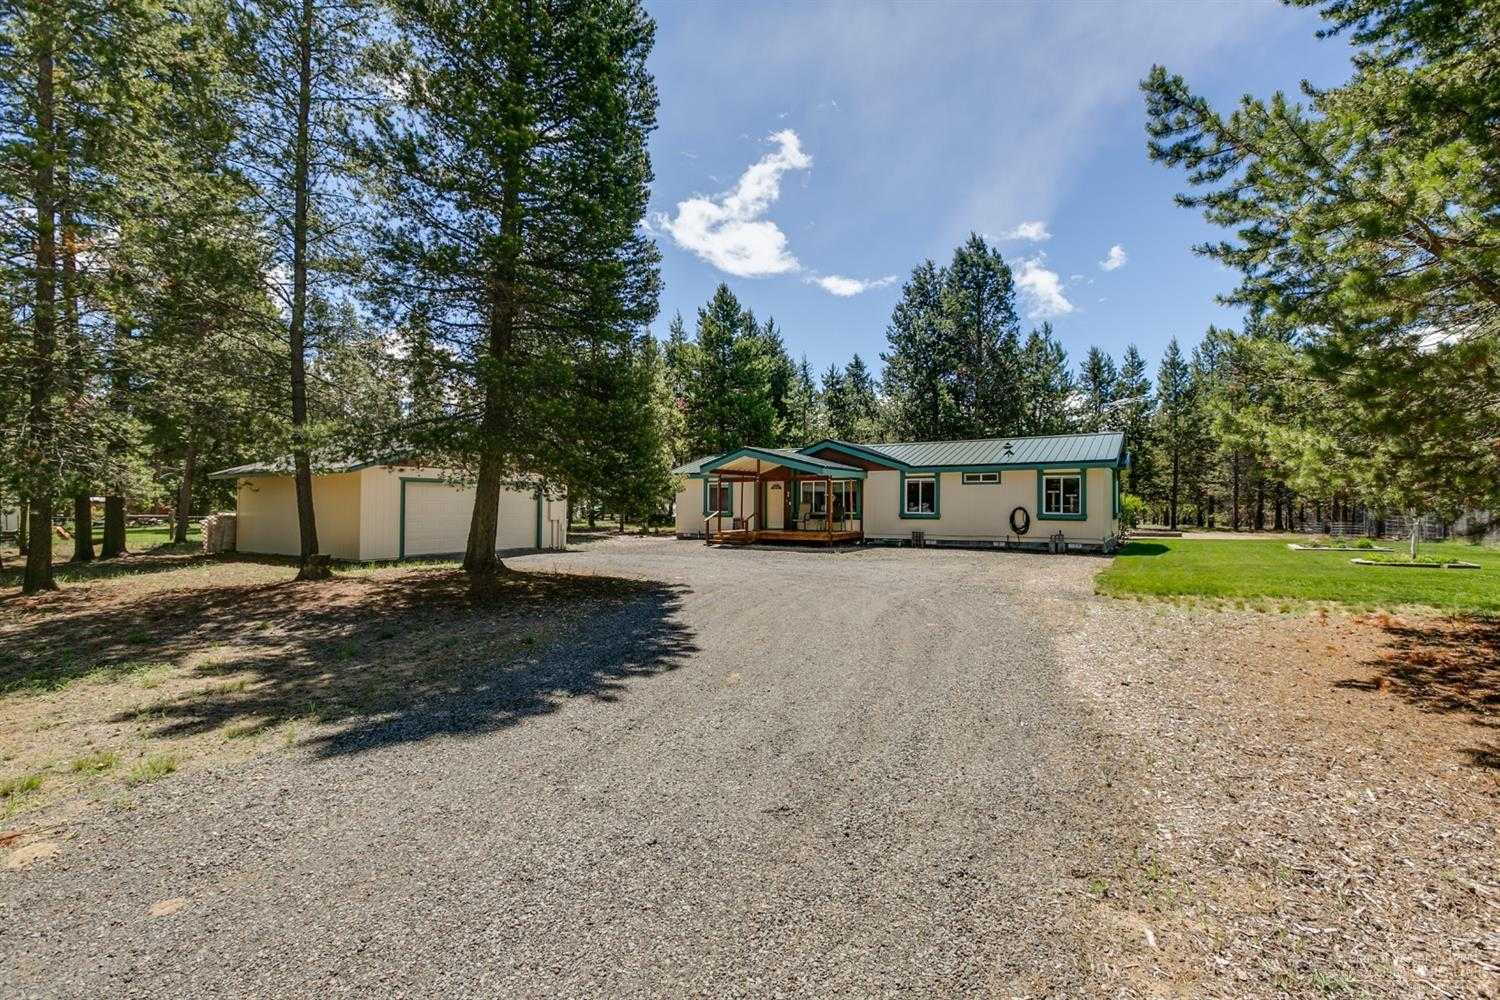 $285,000 - 3Br/2Ba -  for Sale in La Pine